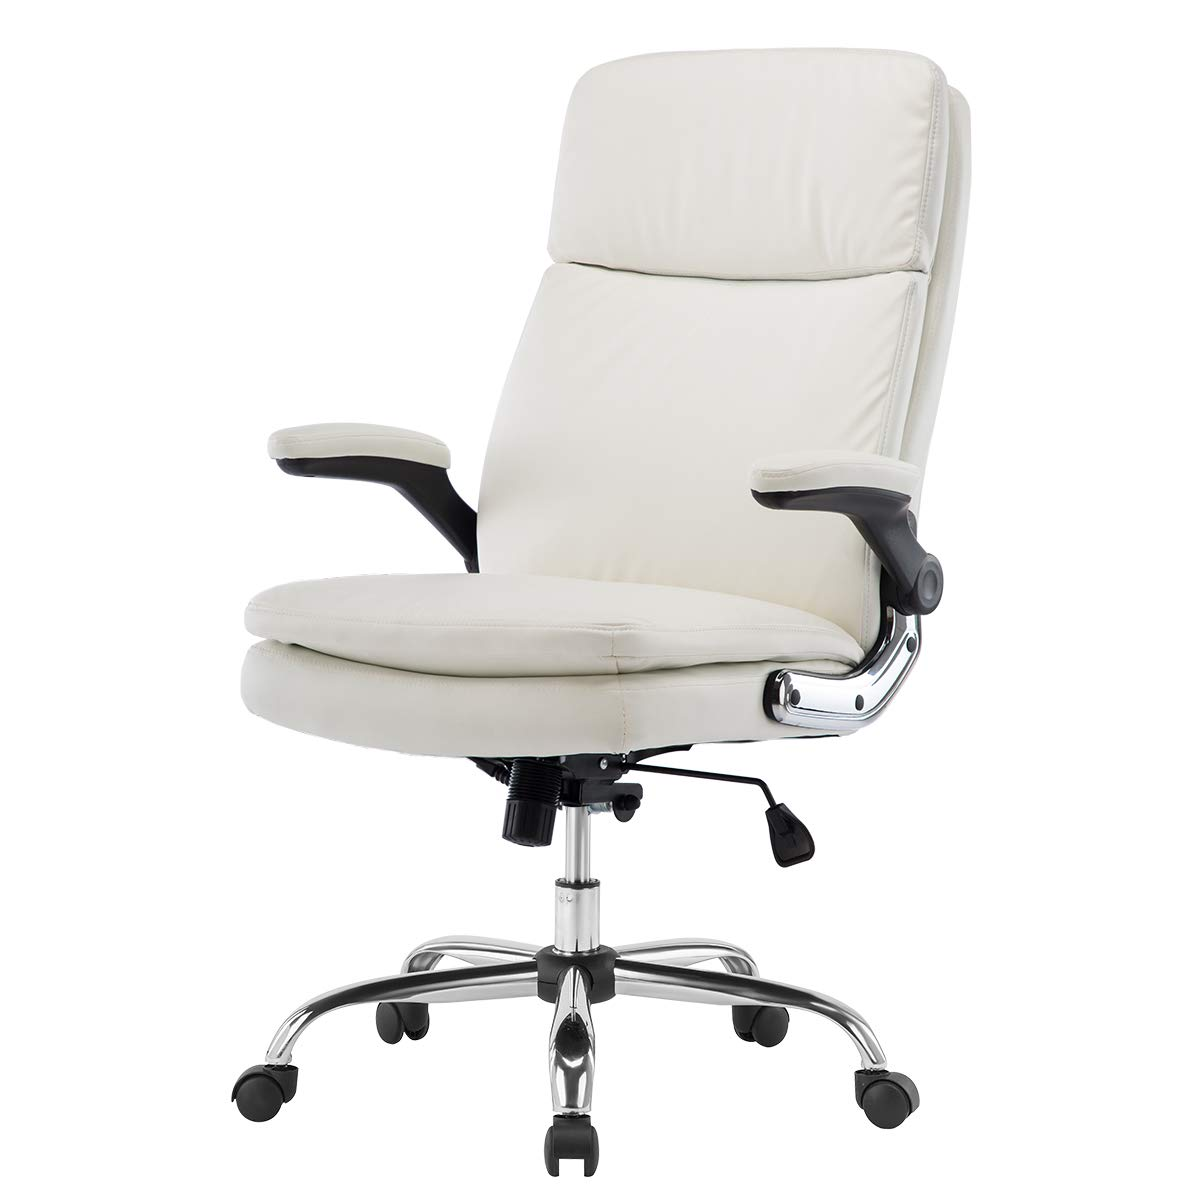 KERMS High Back PU Leather Executive Office Chair, Adjustable Recline Locking Flip-up Arms Computer Desk Chair, Thick Padding and Ergonomic Design for Lumbar Support White